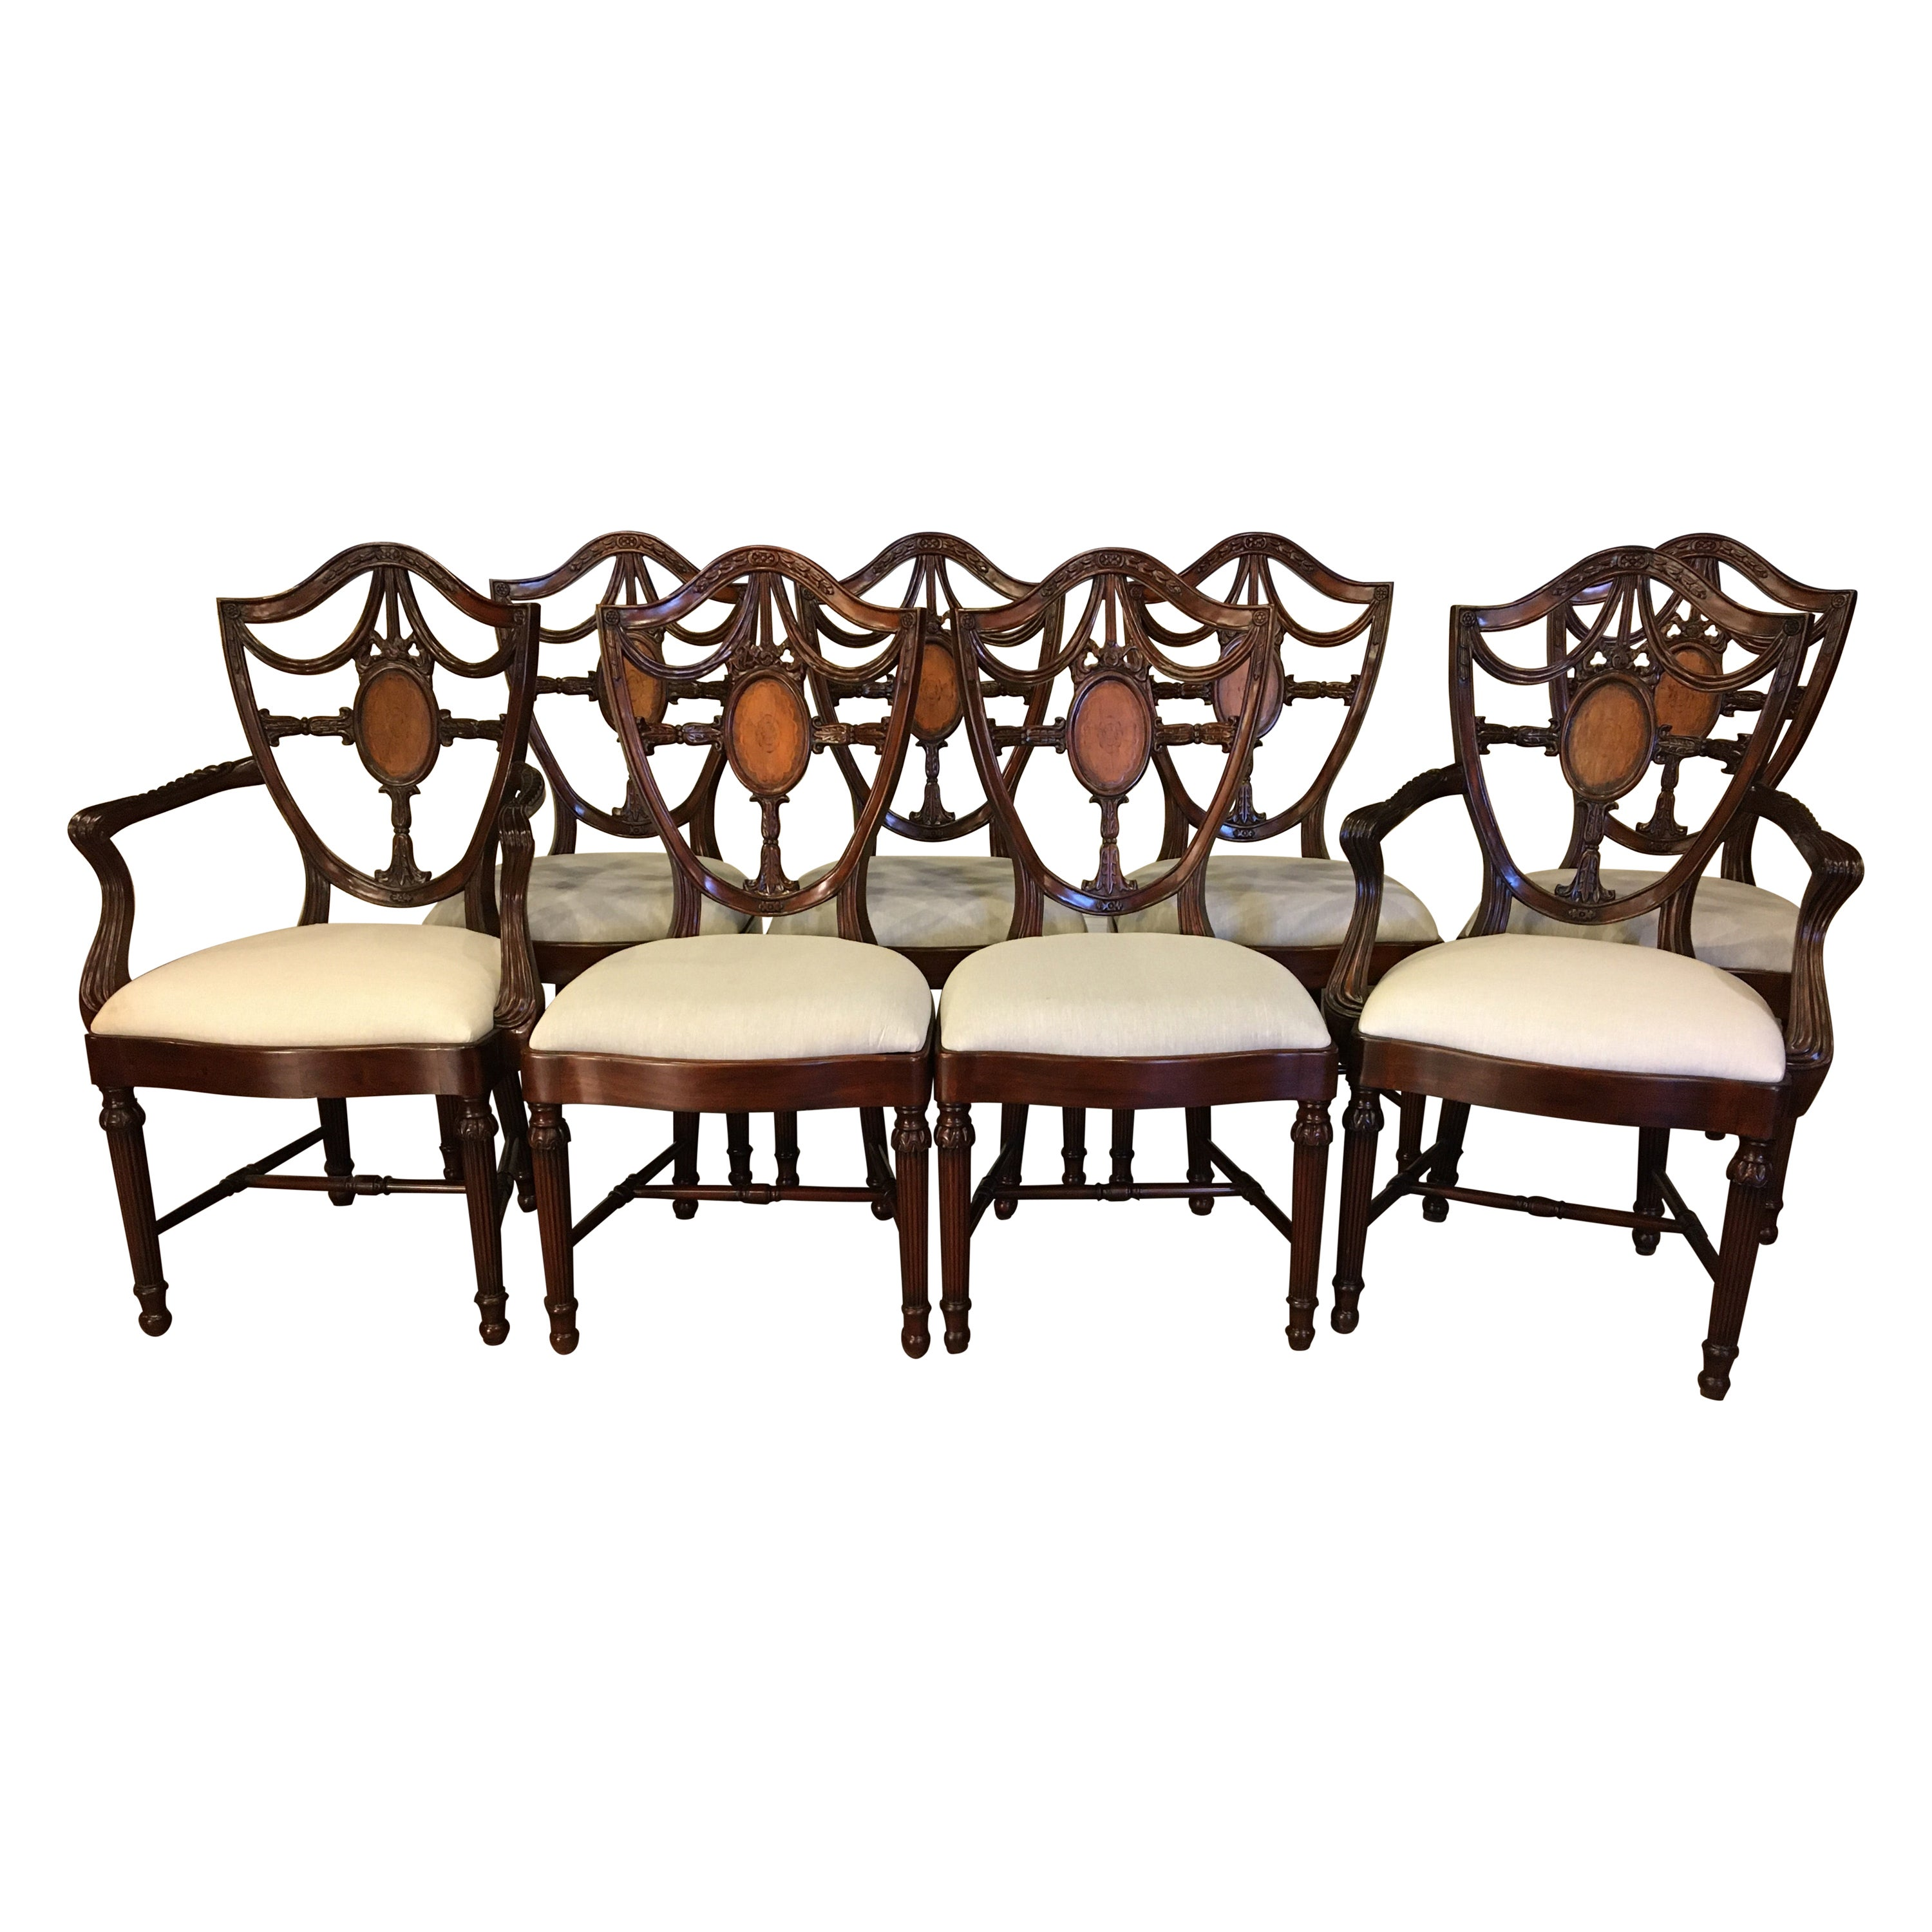 Eight New Traditional Mahogany Inlaid Shieldback Dining Chairs by Leighton Hall